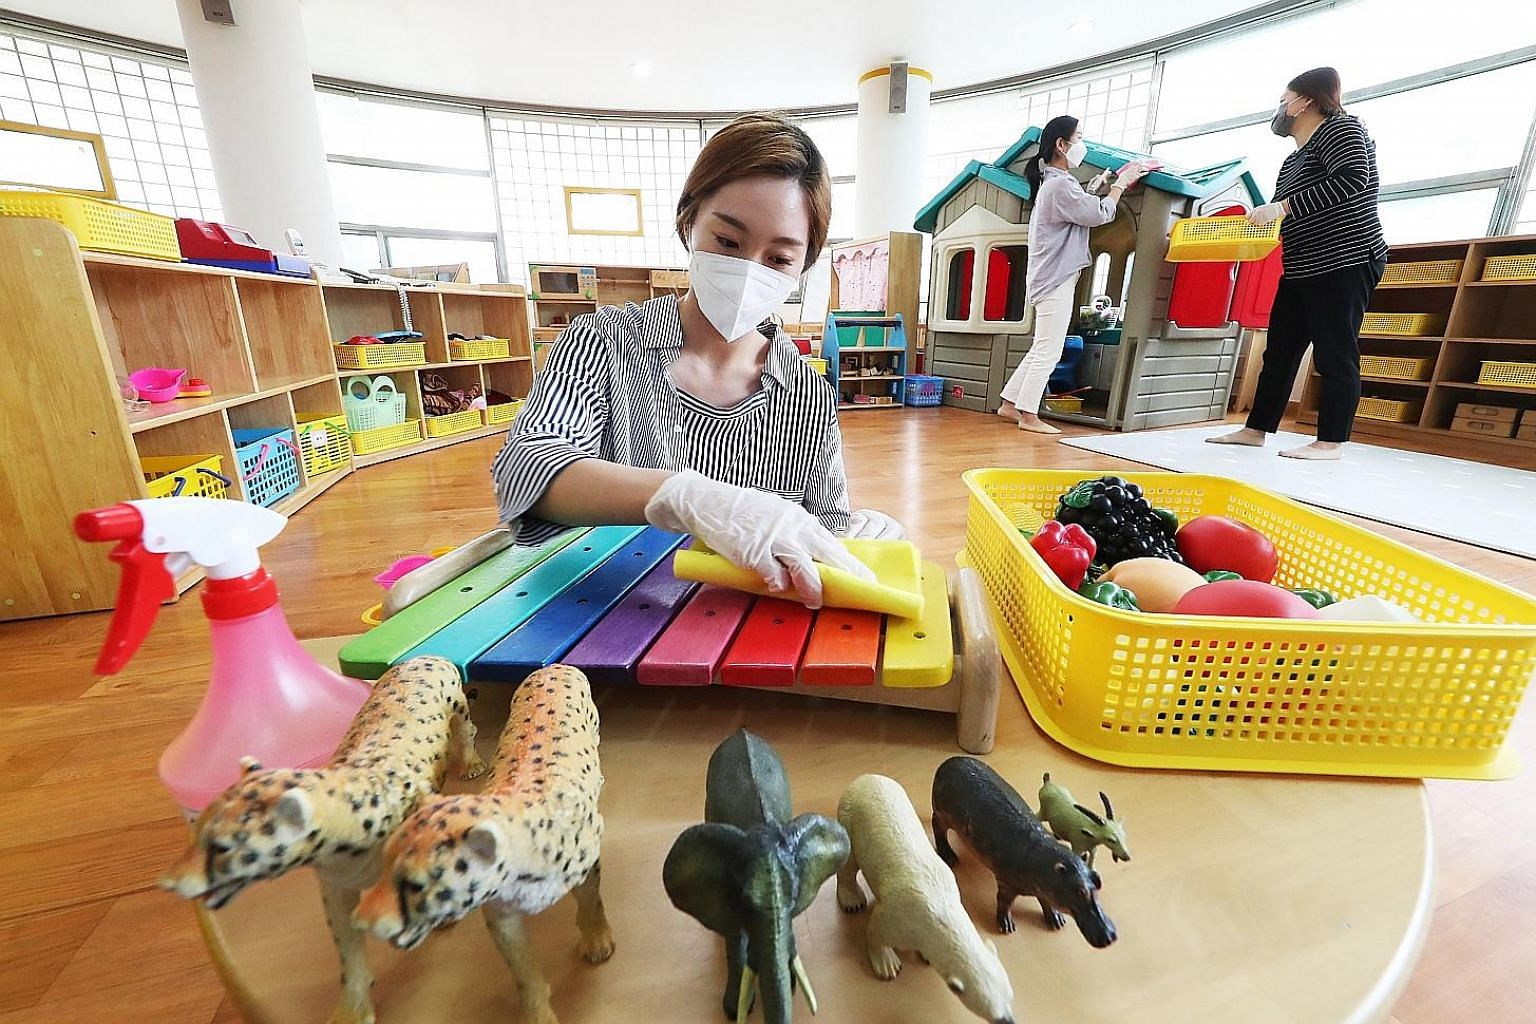 Teachers disinfecting toys at Hanil Kindergarten in Suwon, South Korea, yesterday. The country's second phase of school reopening begins today, with 2.37 million students, including kindergarteners and elementary school pupils, set to return. Many pa